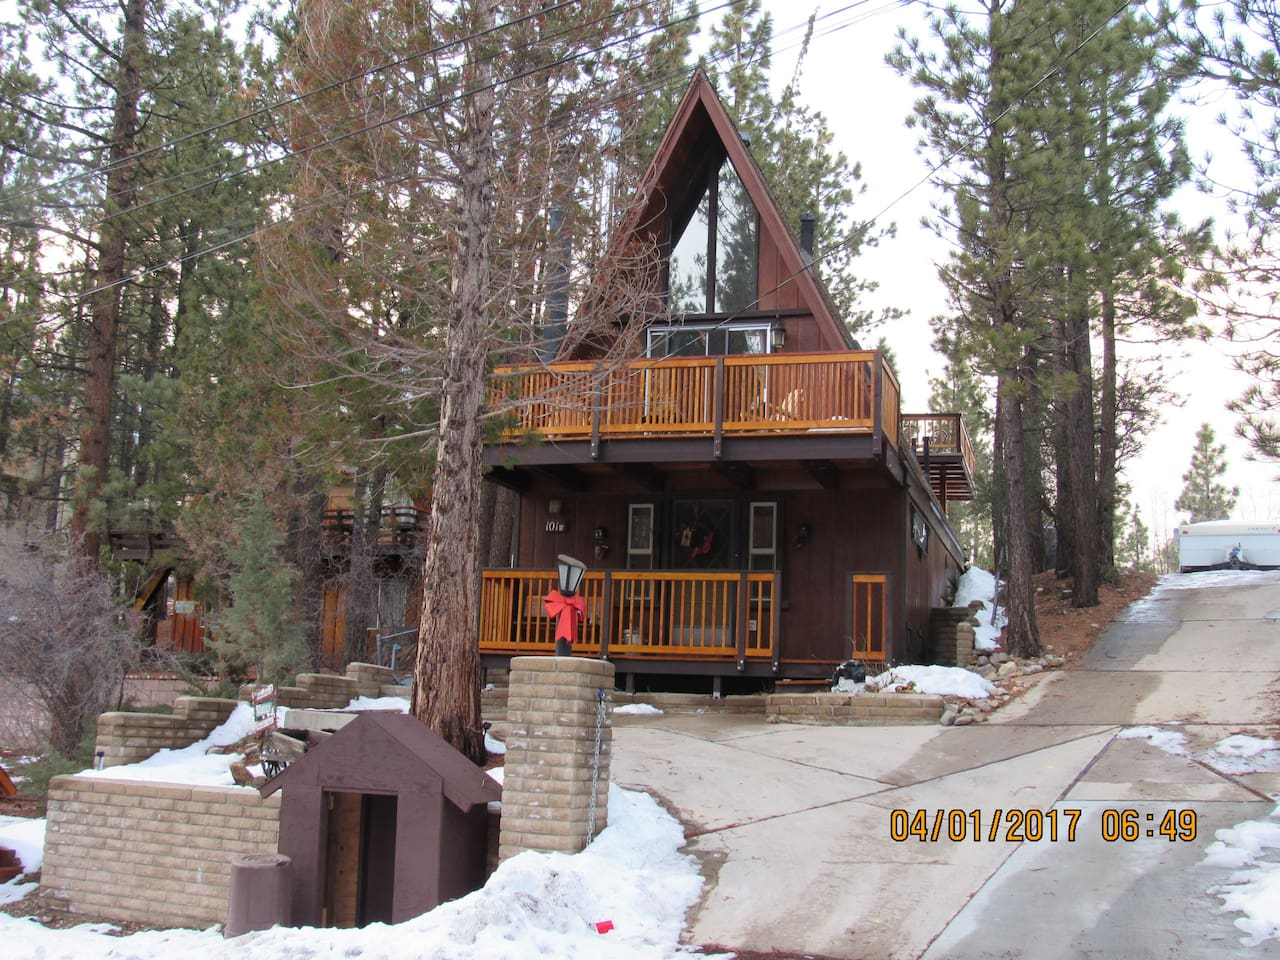 cabin lake ca cabins rental christmas california rent vacation for big snow rentals bear in summit